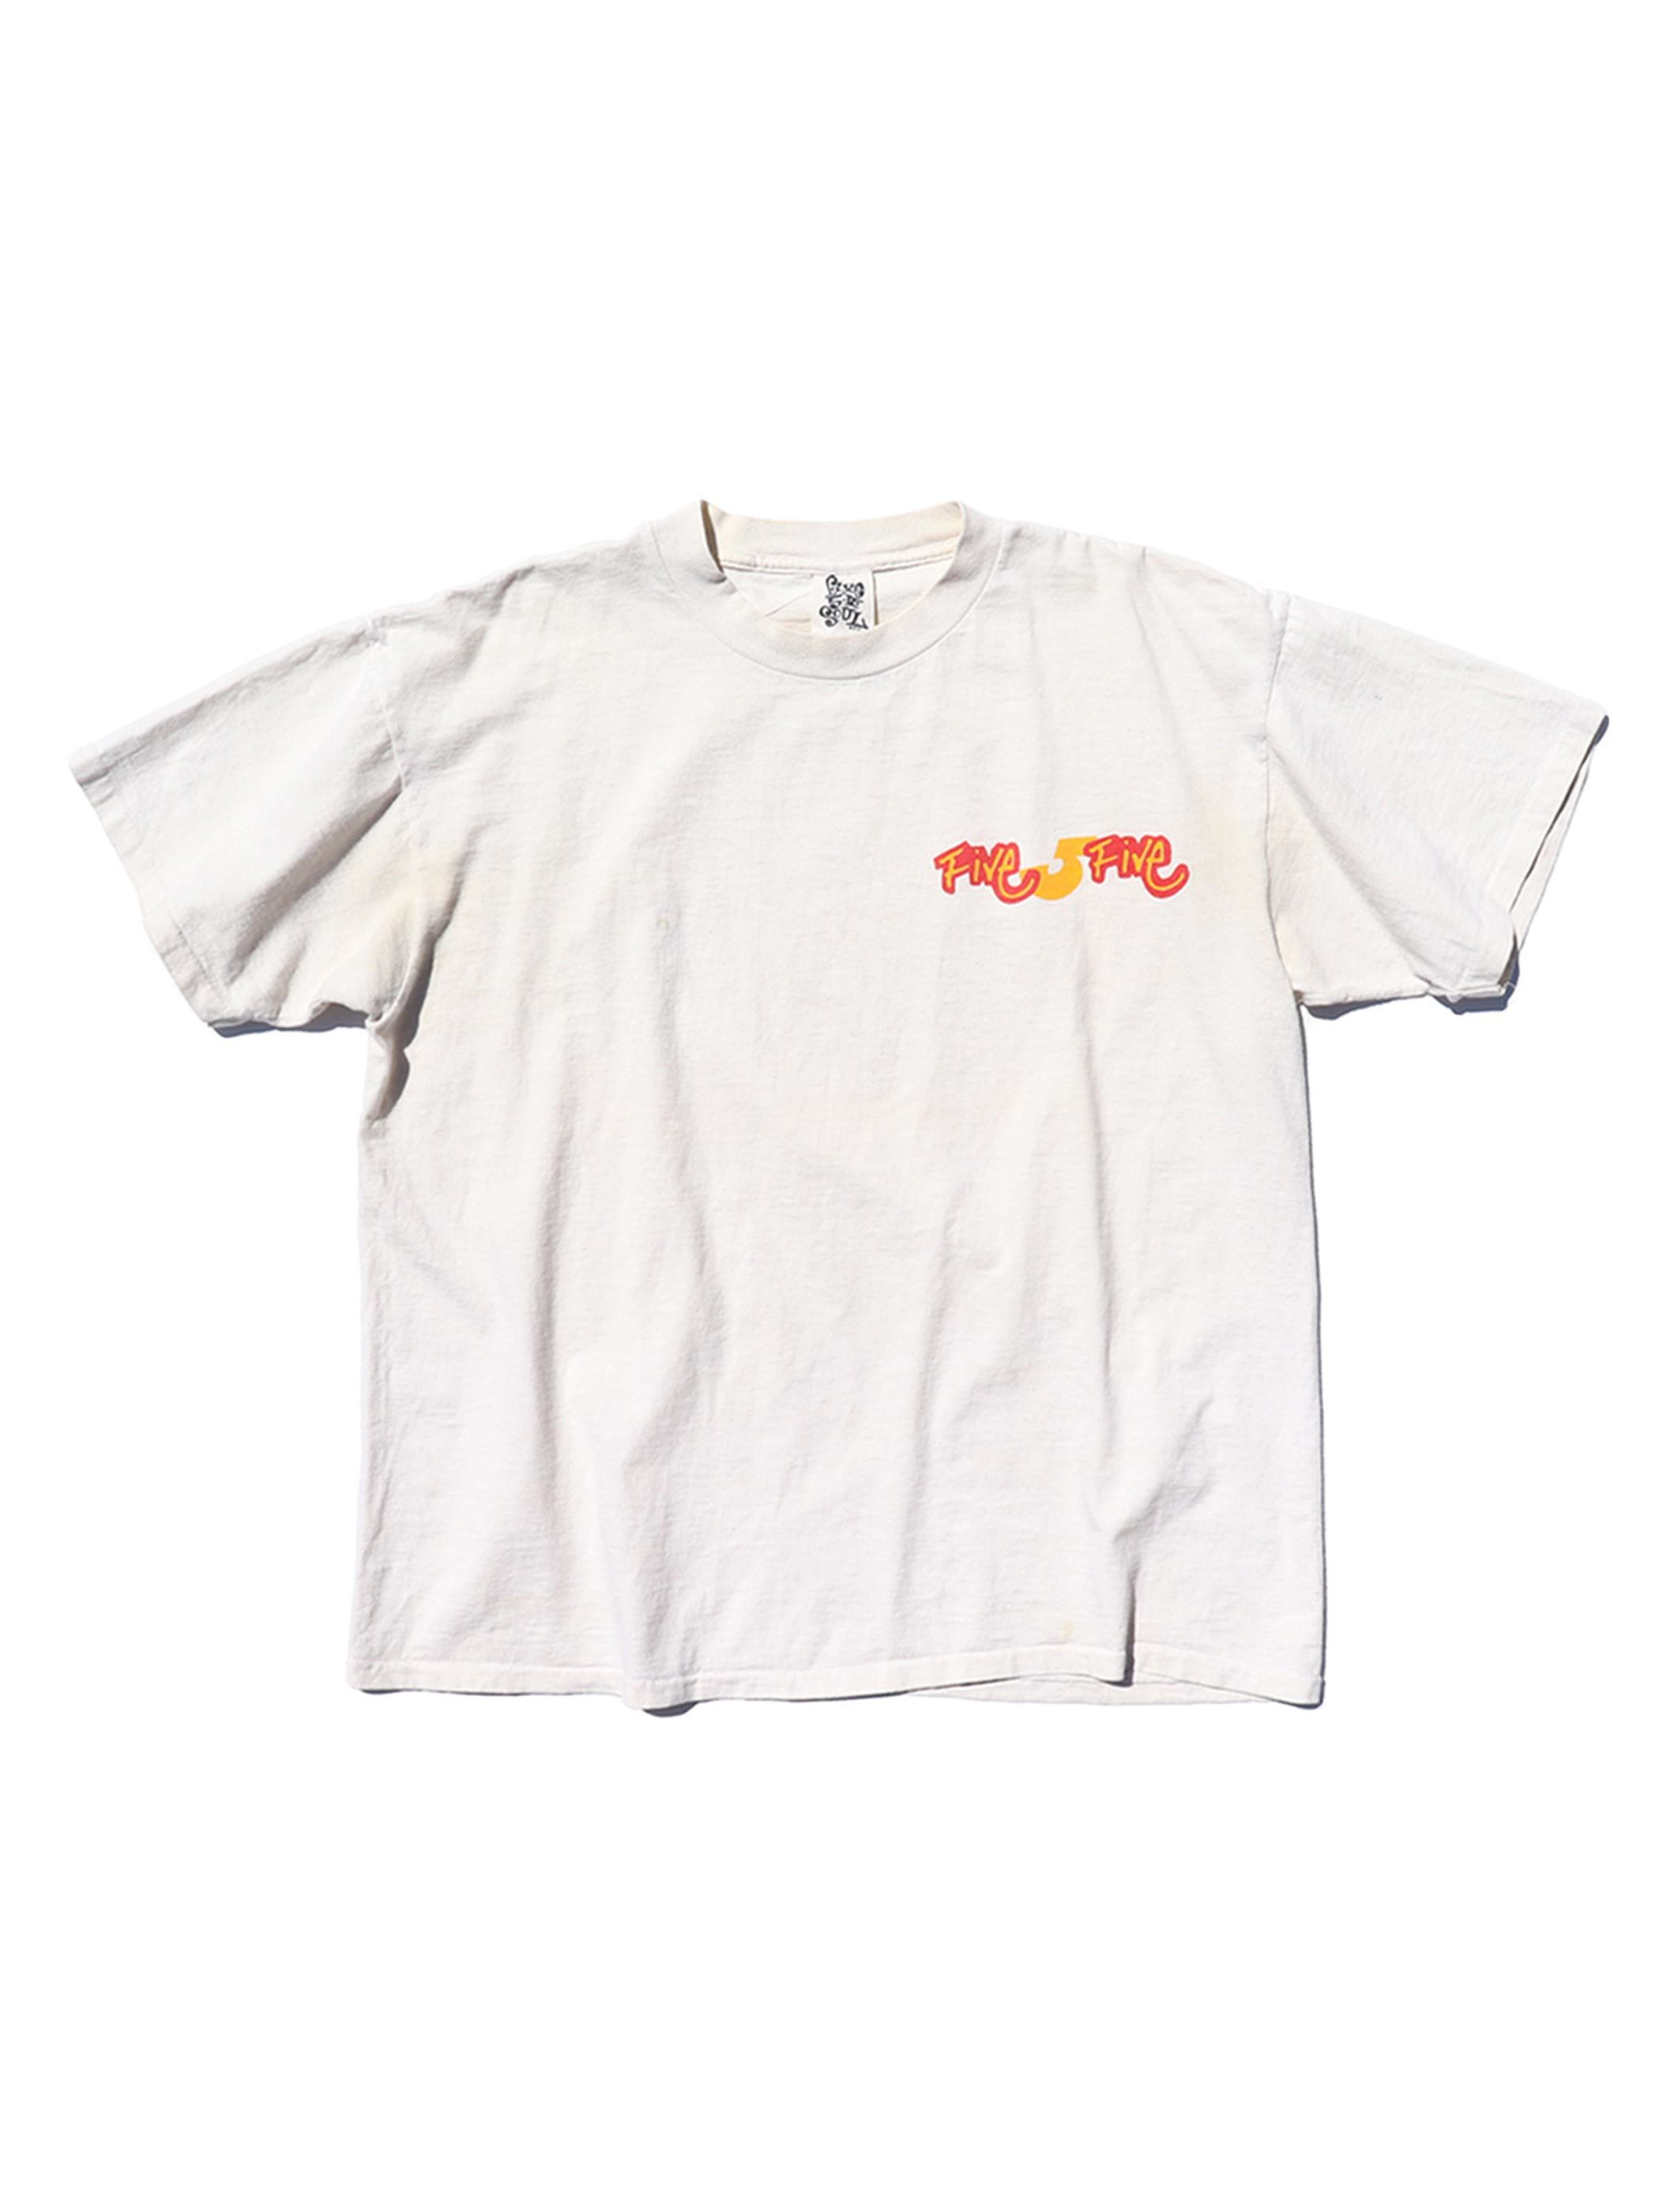 90's TRIPLE FIVE SOUL プリントTシャツ [About XL]